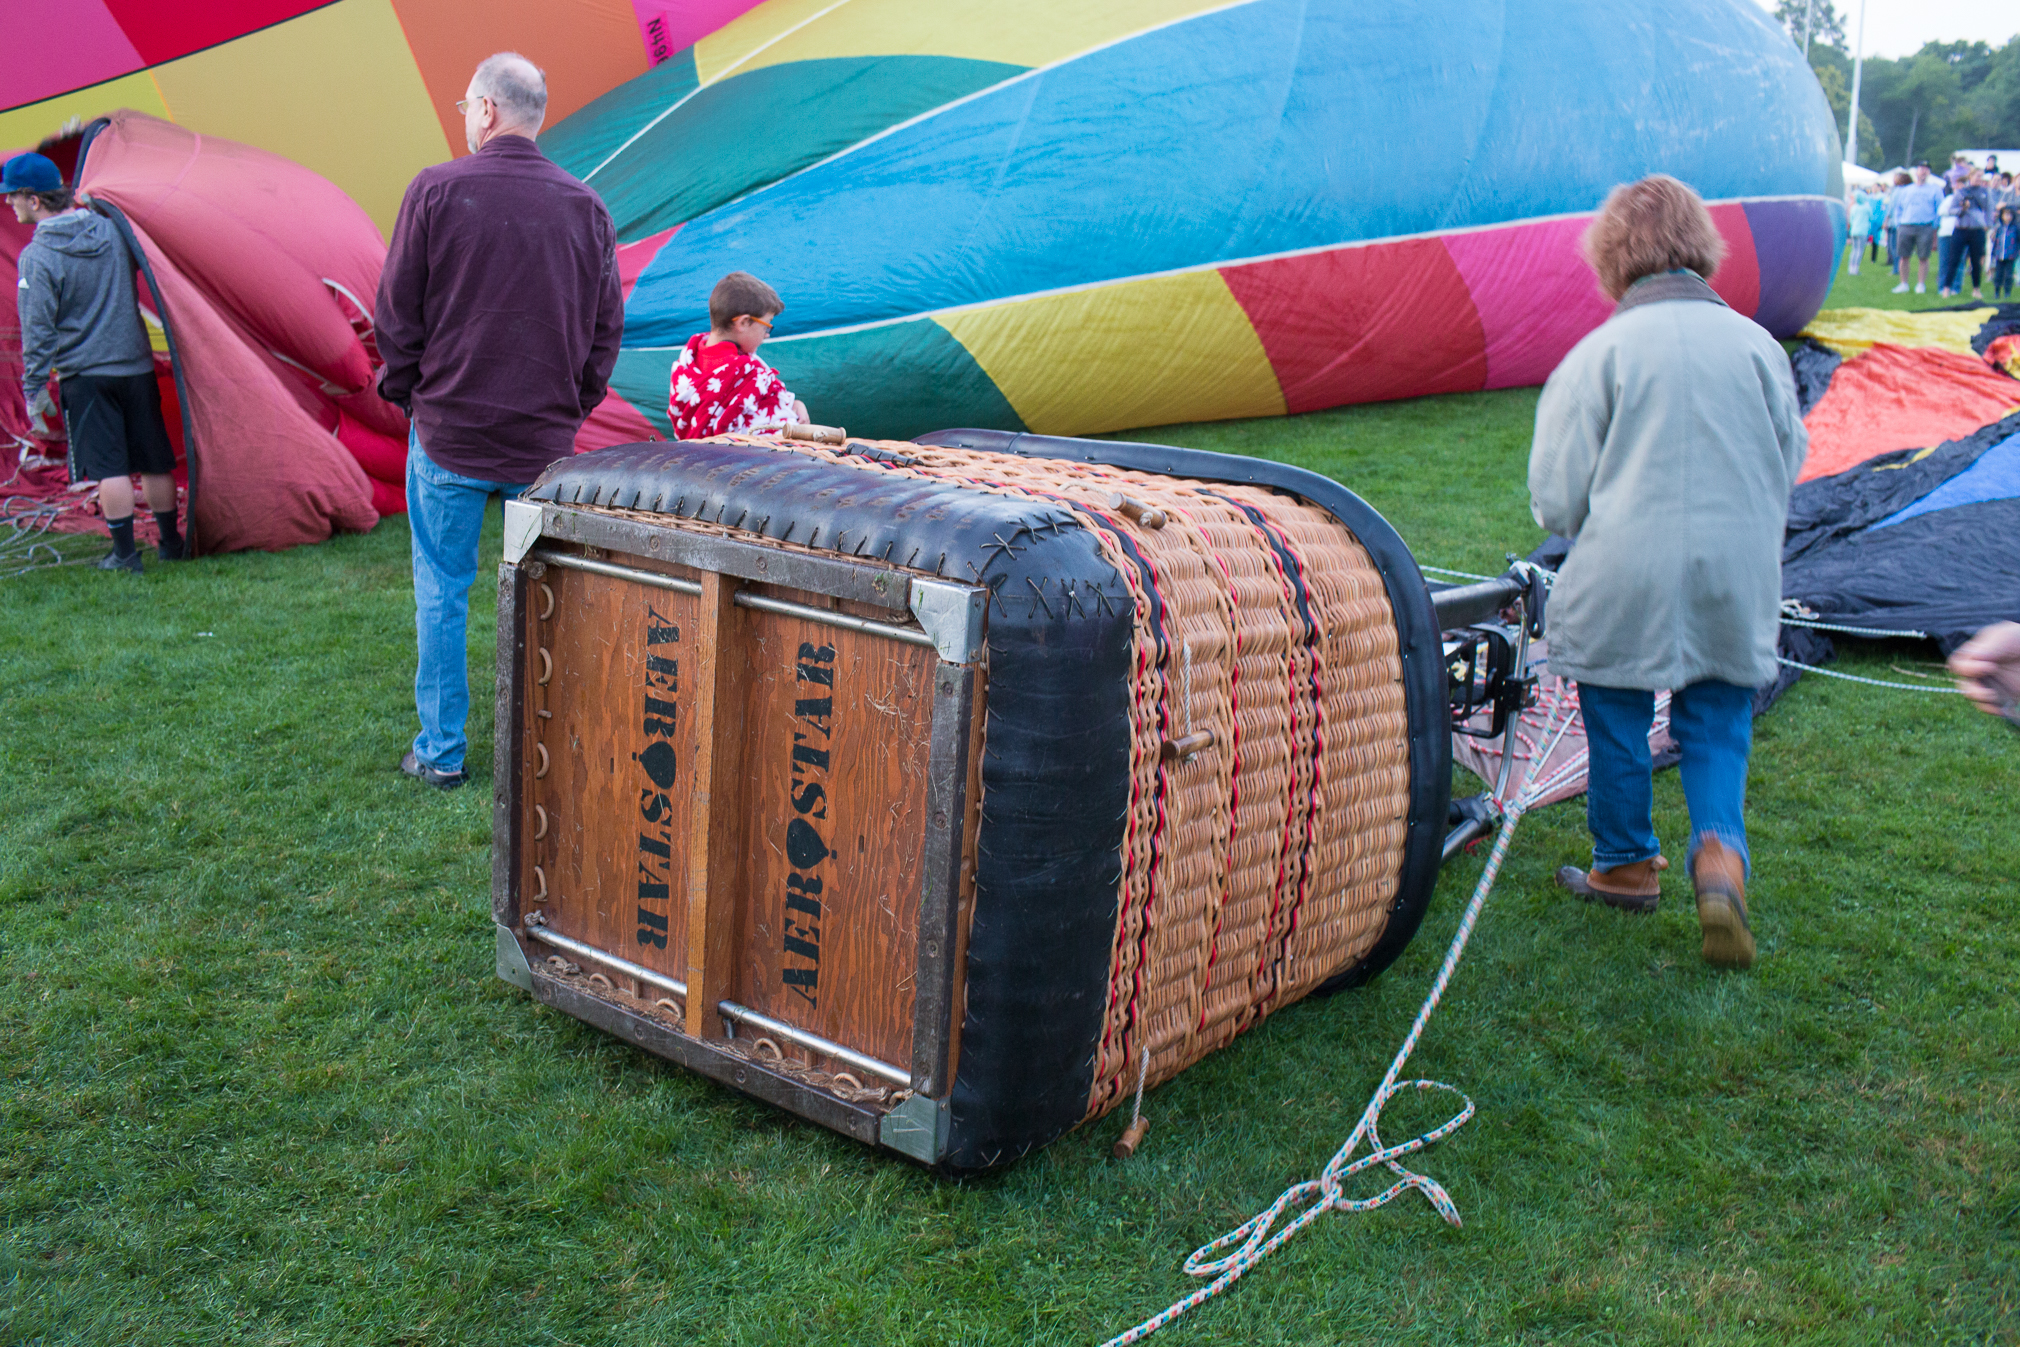 Aerostar basket in a hot air balloon